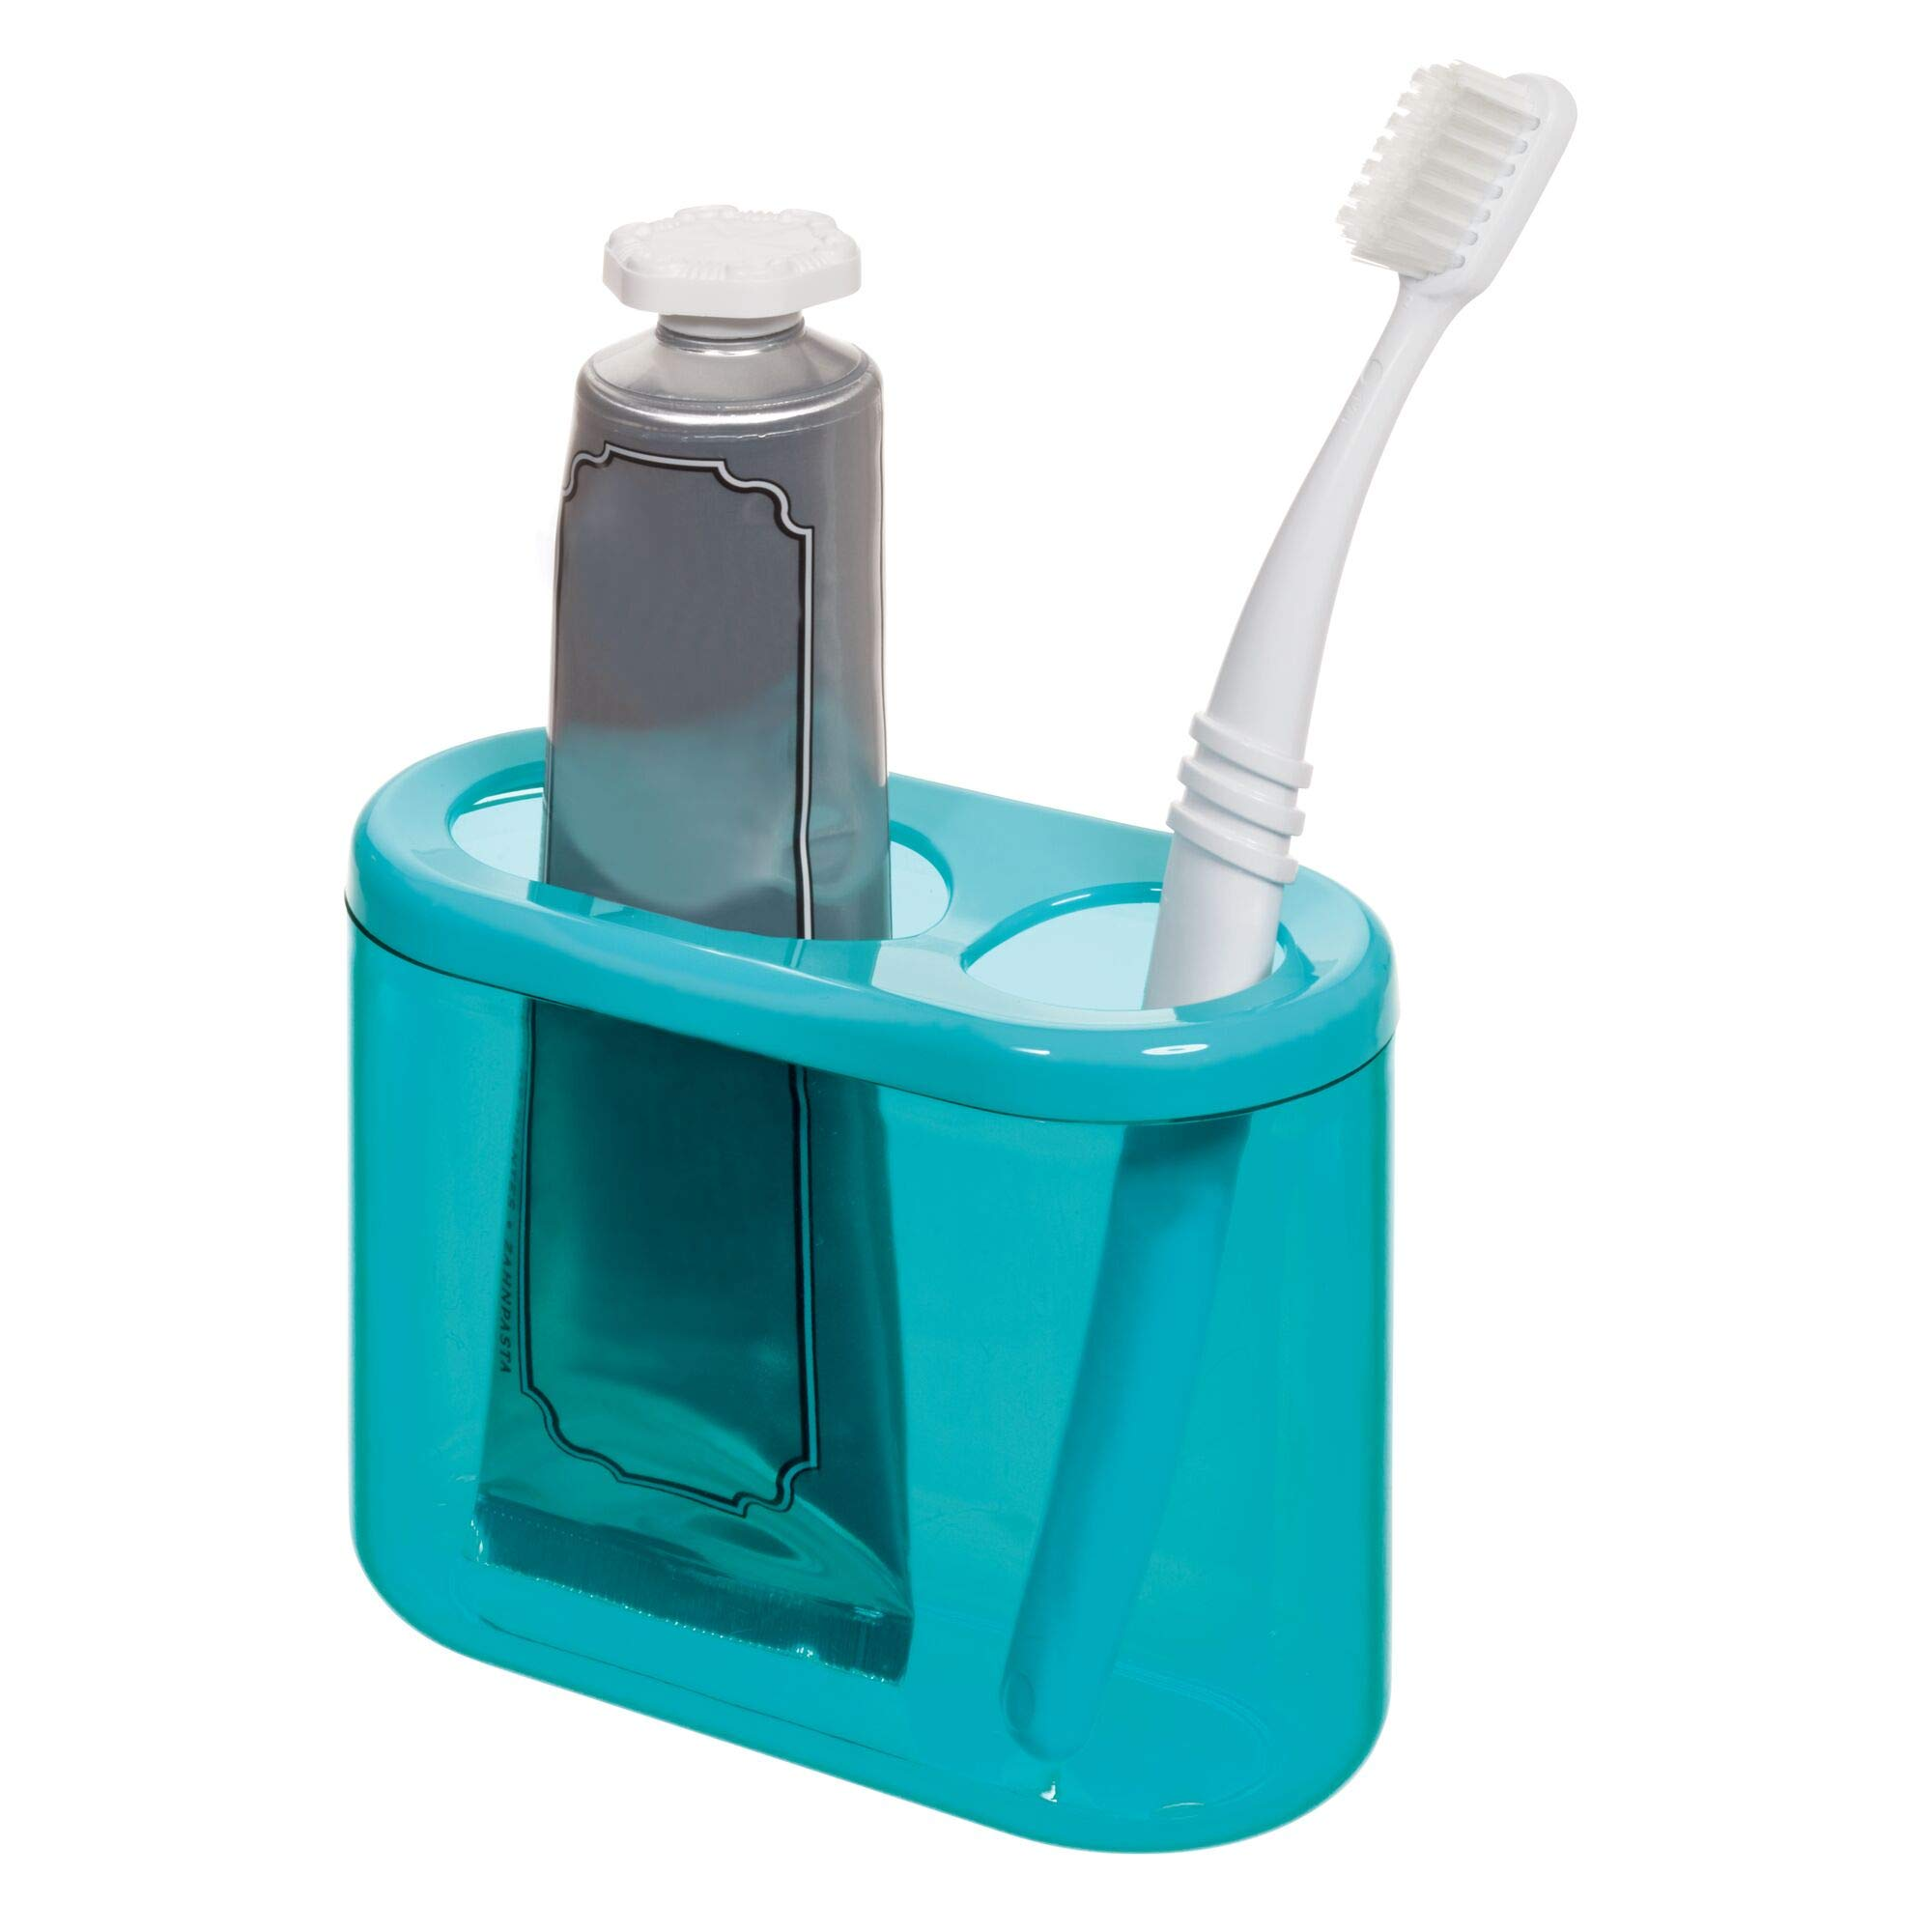 iDesign Finn Plastic Oval Holder, Holds Up to Standard and Spin Toothbrushes, Toothpaste, Make-up Brushes, Pencils, Pens and Markers, Teal and White